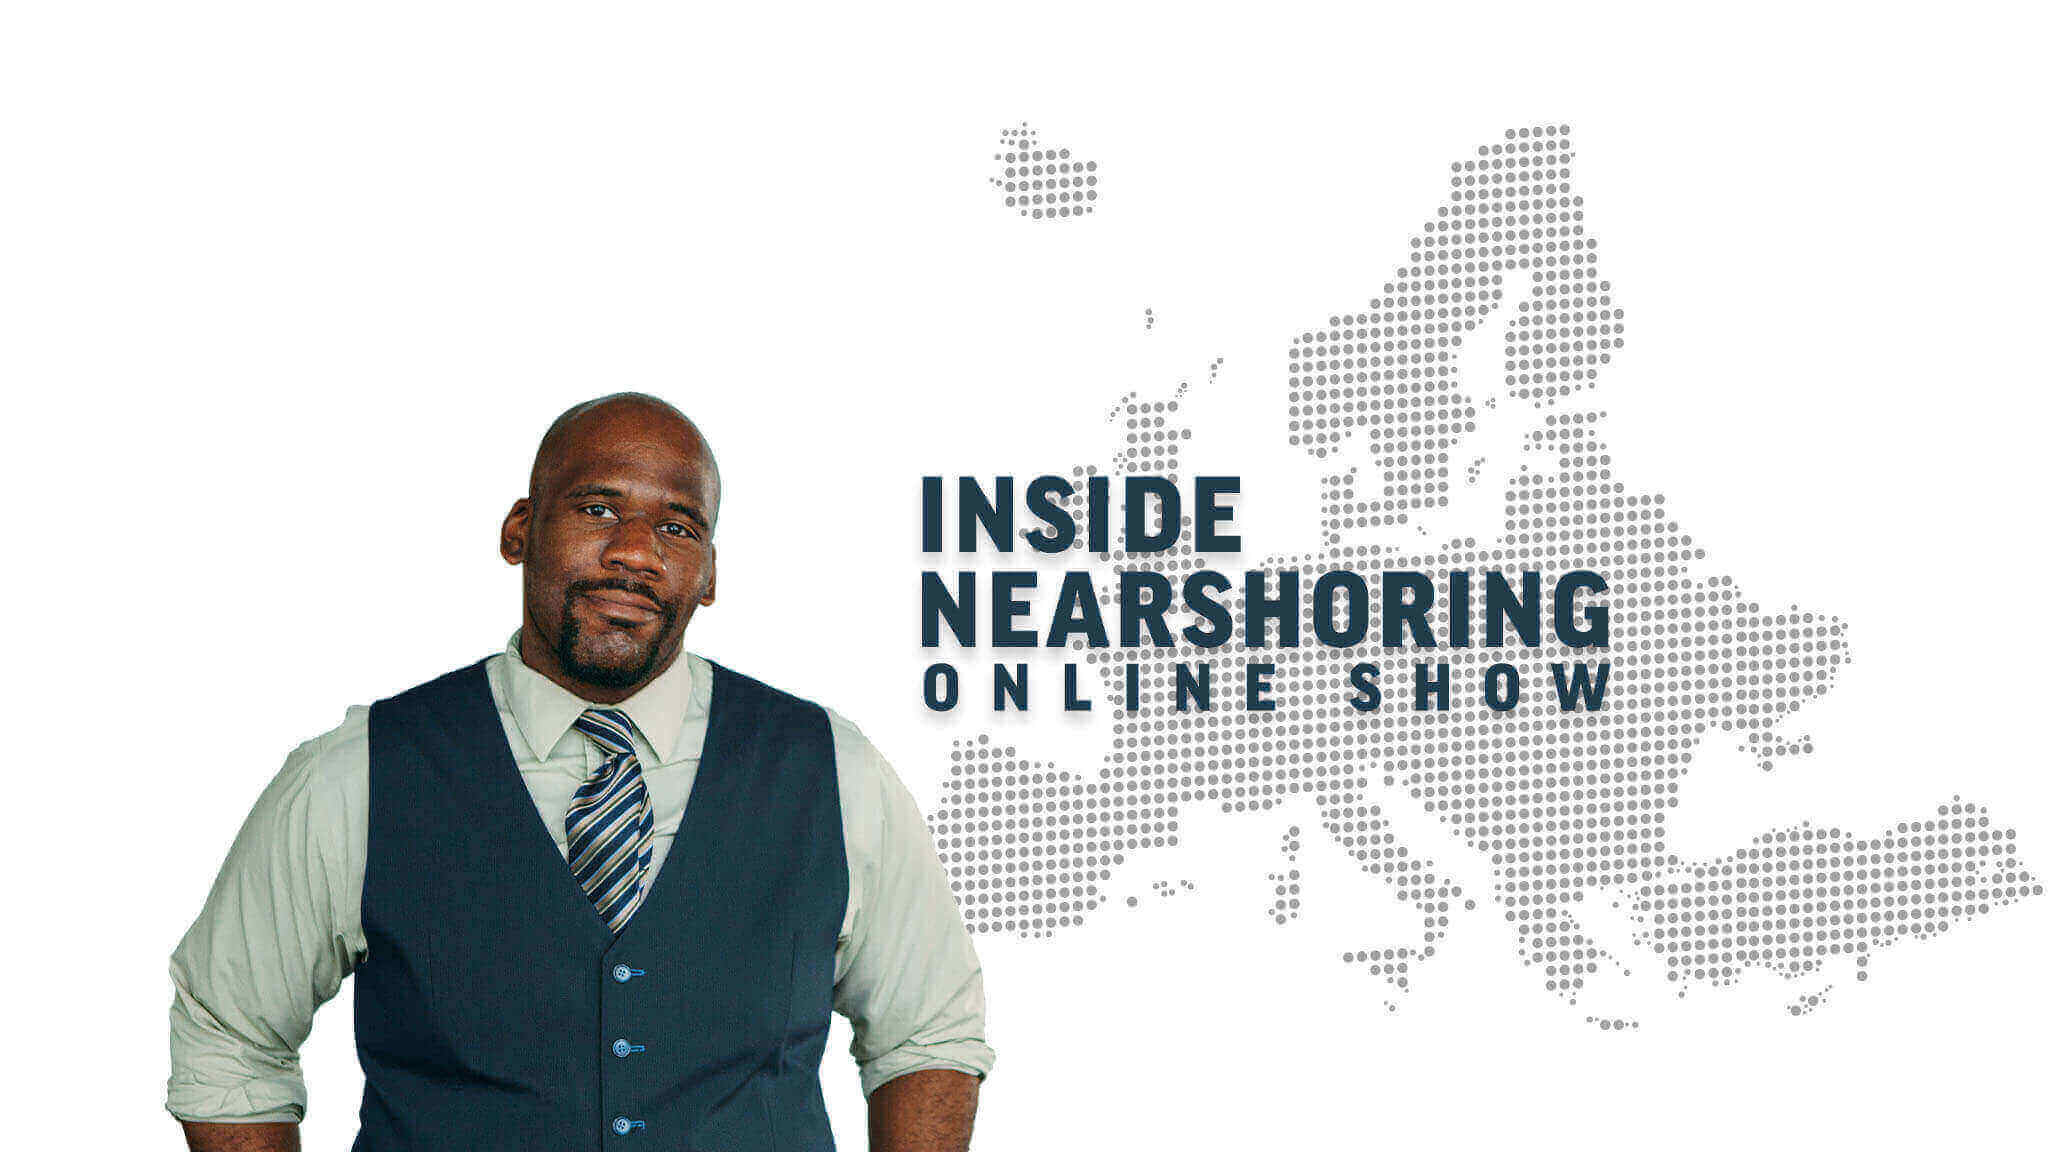 interview with cyril samovskiy on inside nearshoring online show